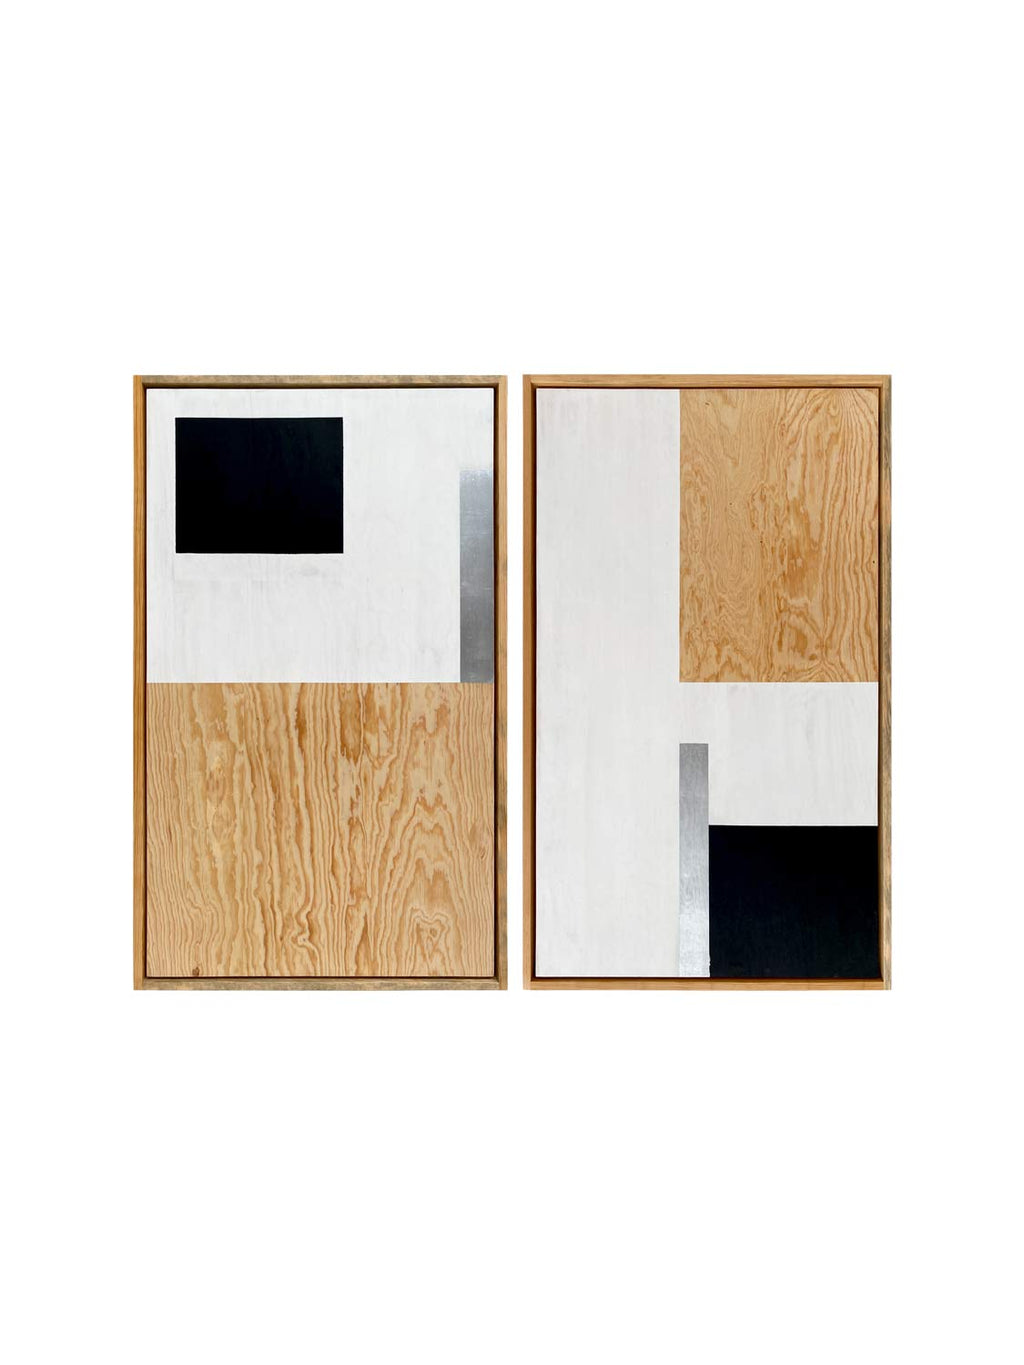 Cuadro C.Aura Wood Block set 2